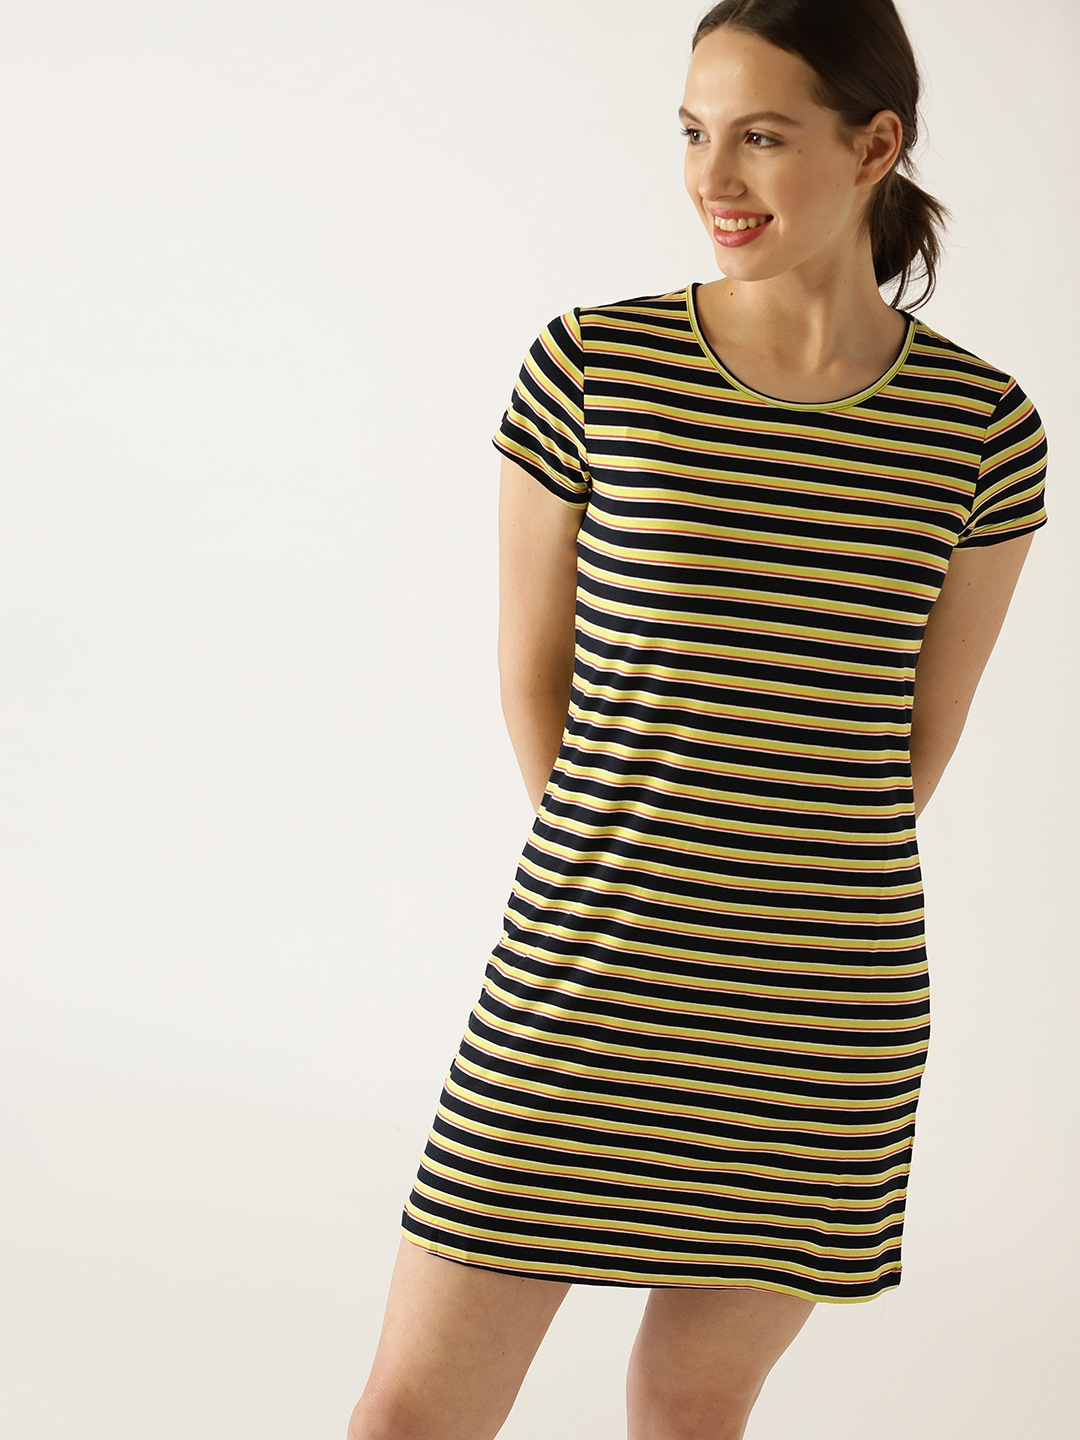 65ed67f6aaba United Colors of Benetton Women Navy Blue   Lime Green Striped Mini T-shirt  Dress